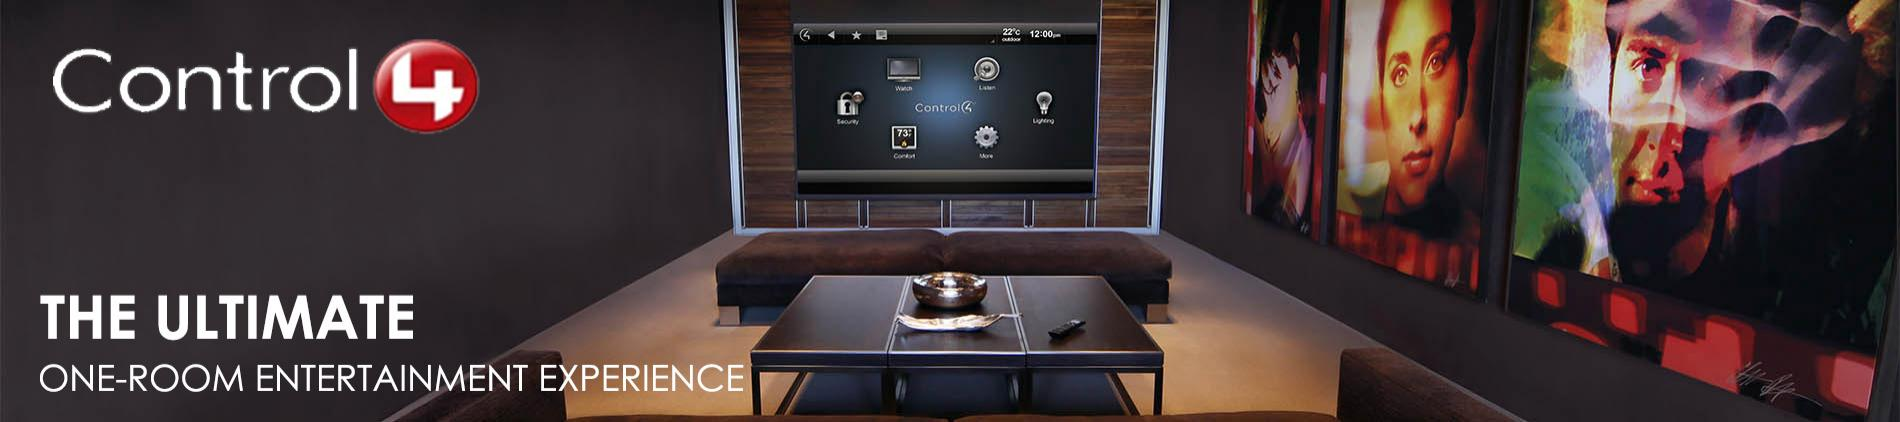 Control4,home theatre, Custom home,multi-room,music streaming,home control,automatic